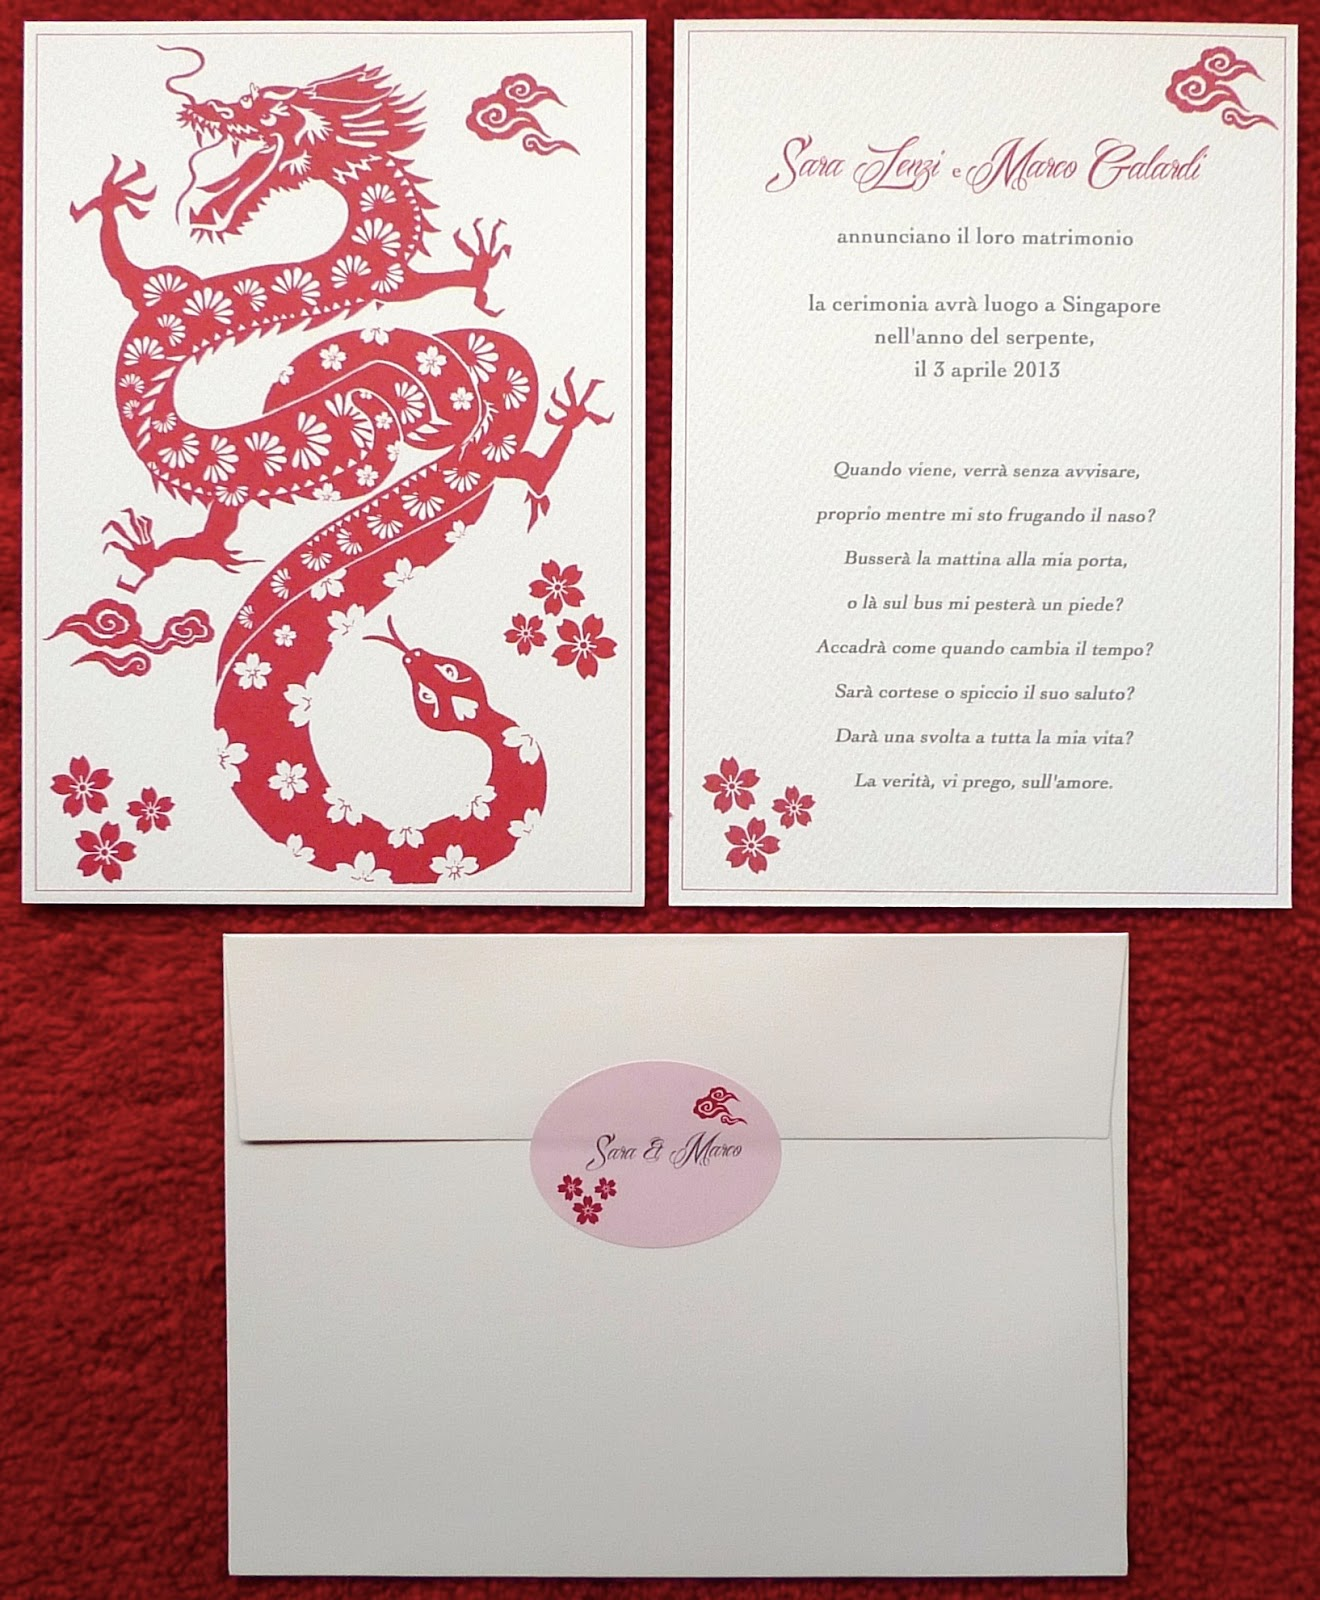 Kalo make art bespoke wedding invitation designs dragon snake kalo make art bespoke wedding invitation designs dragon snake bespoke wedding invitation design singapore stopboris Choice Image